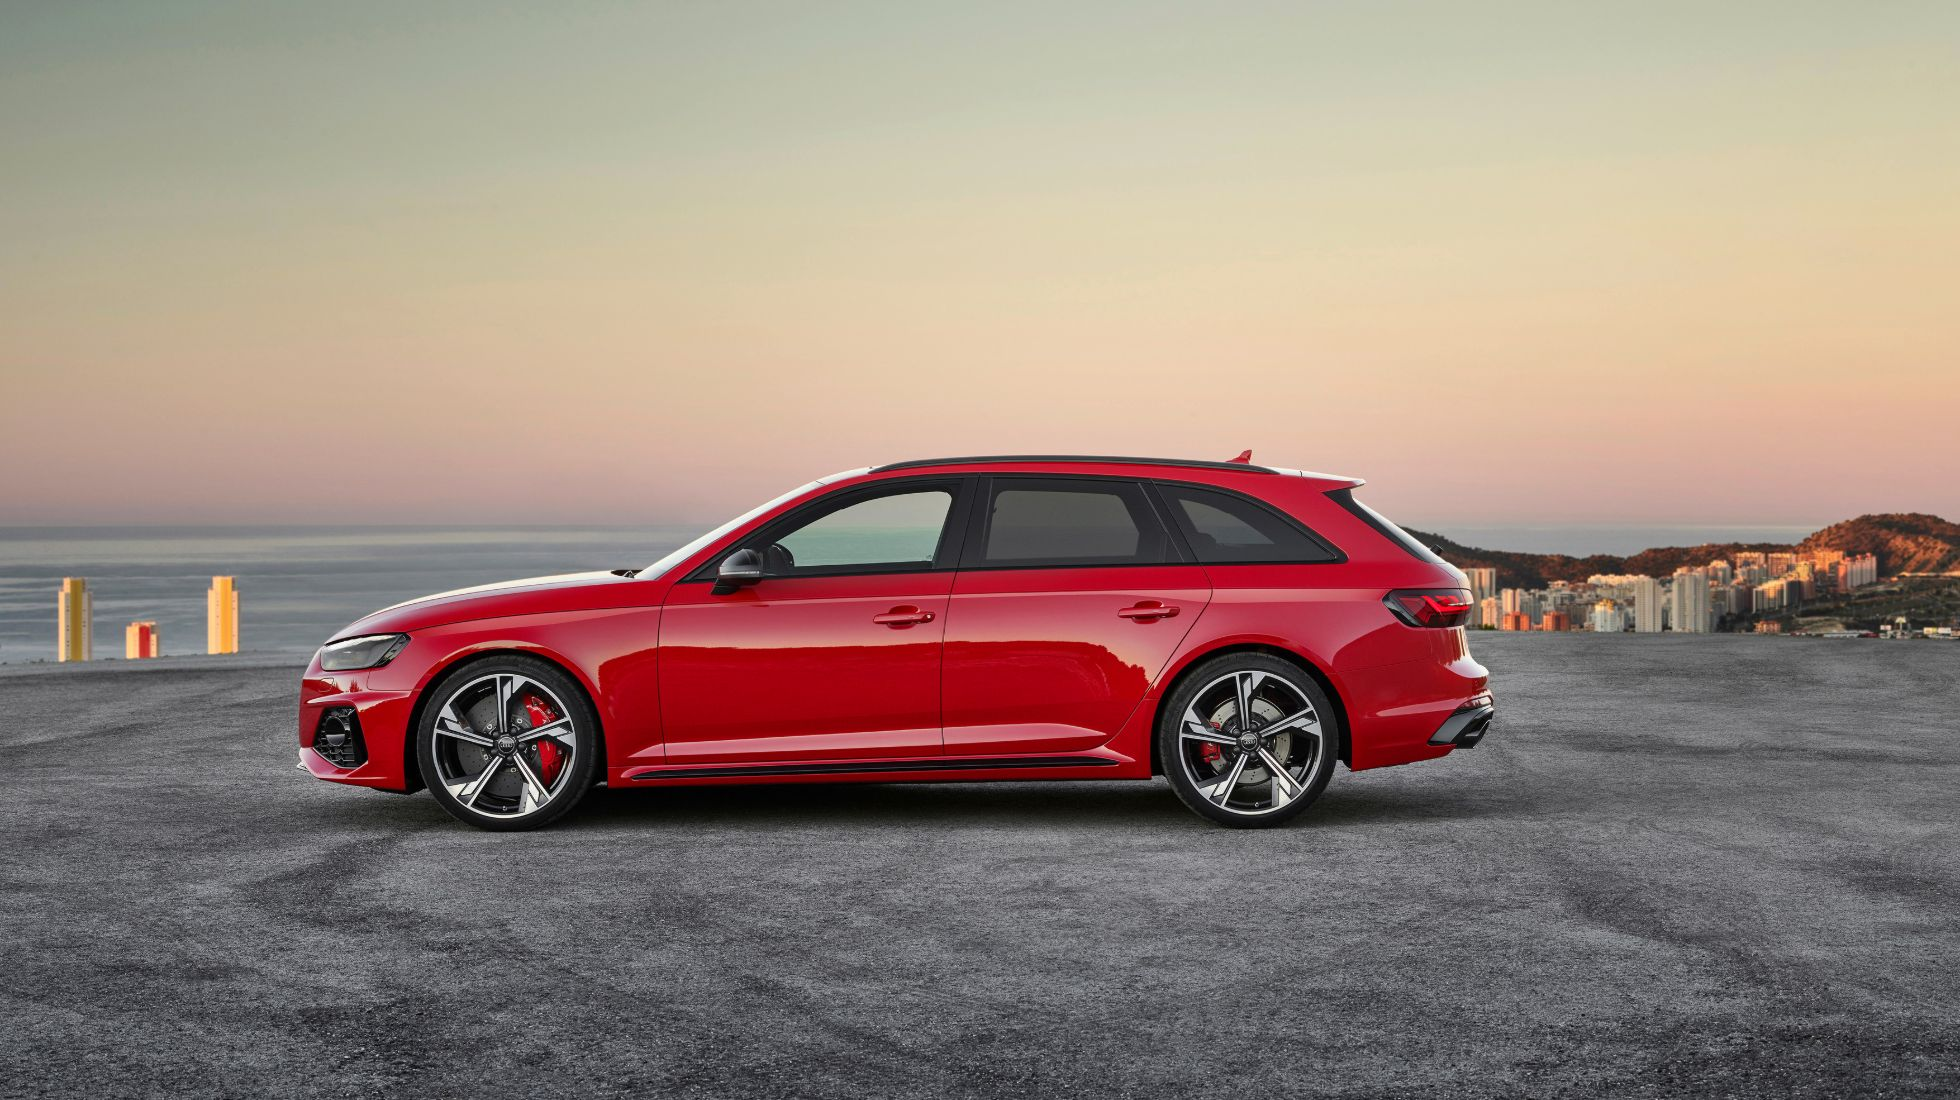 Audi's updated RS 4 and RS 5 models arrive in Mzansi